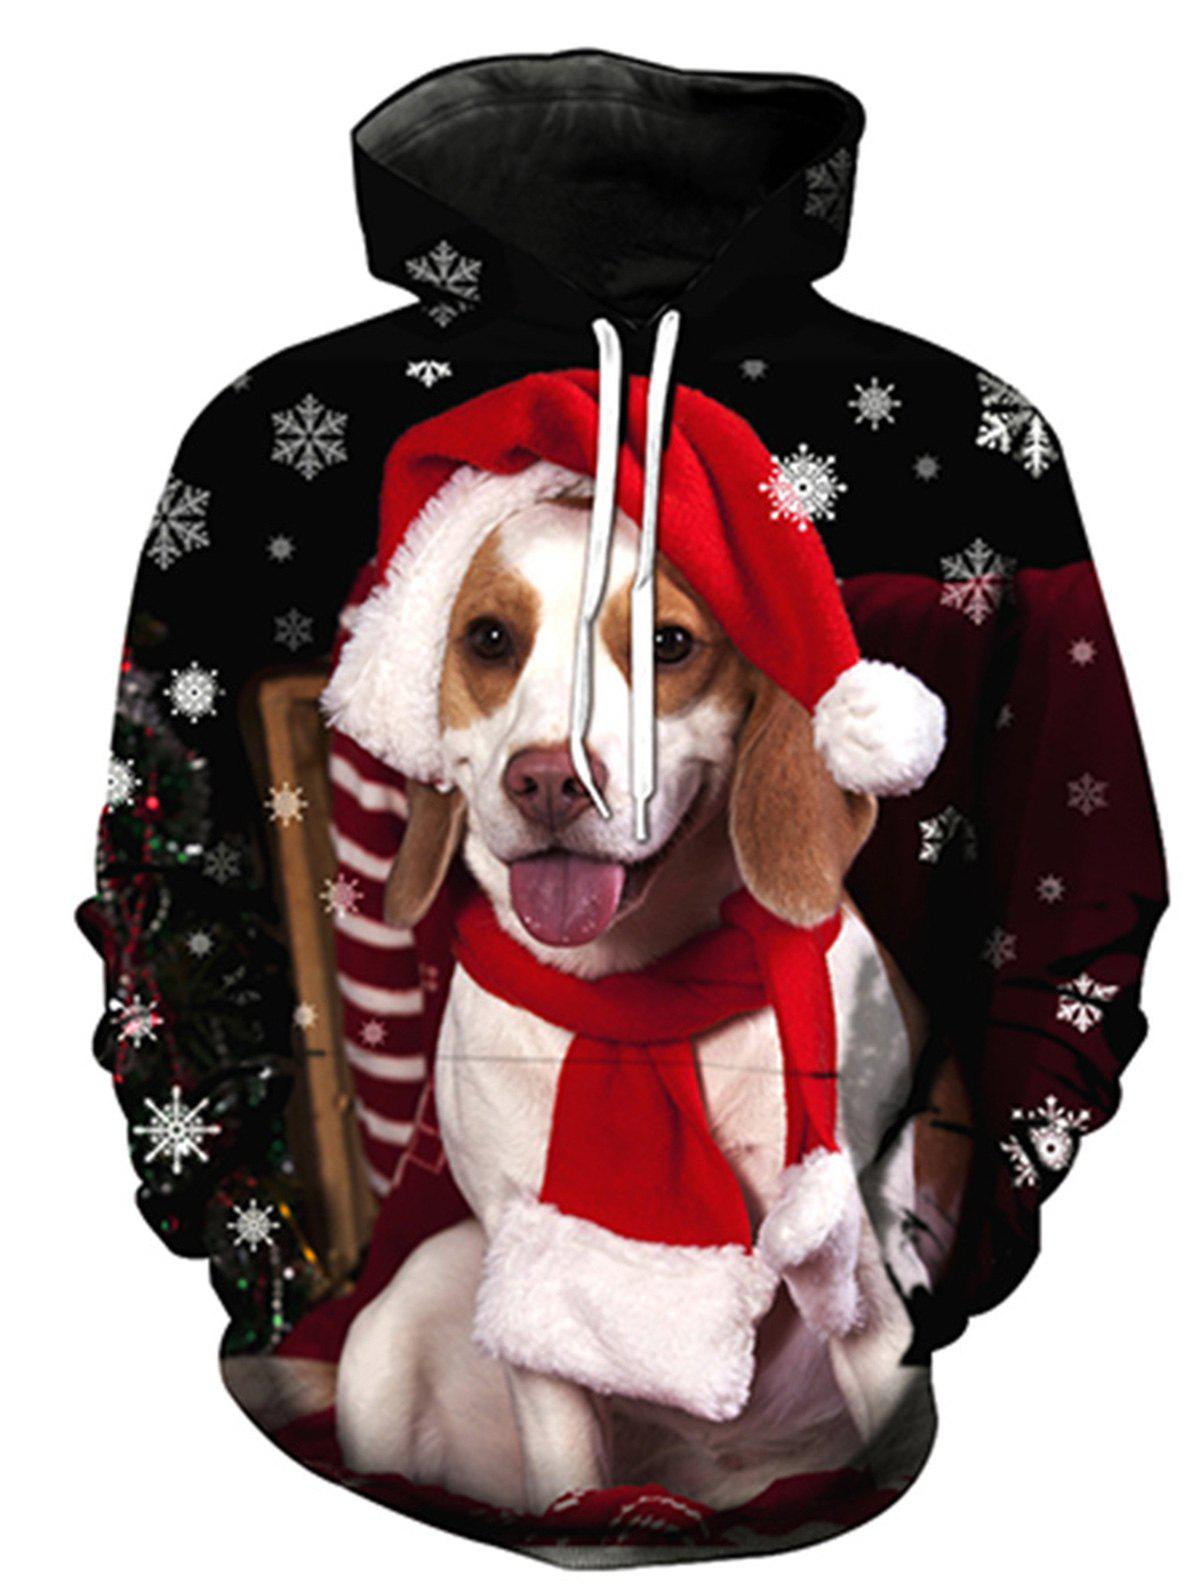 Christmas Dog 3D Print Pullover HoodieMEN<br><br>Size: 3XL; Color: COLORMIX; Material: Cotton,Polyester; Clothes Type: Hoodie; Shirt Length: Regular; Sleeve Length: Full; Style: Fashion; Patterns: 3D,Animal; Thickness: Regular; Occasion: Casual ,Daily Use,Going Out; Weight: 0.4800kg; Package Contents: 1 x Hoodie;